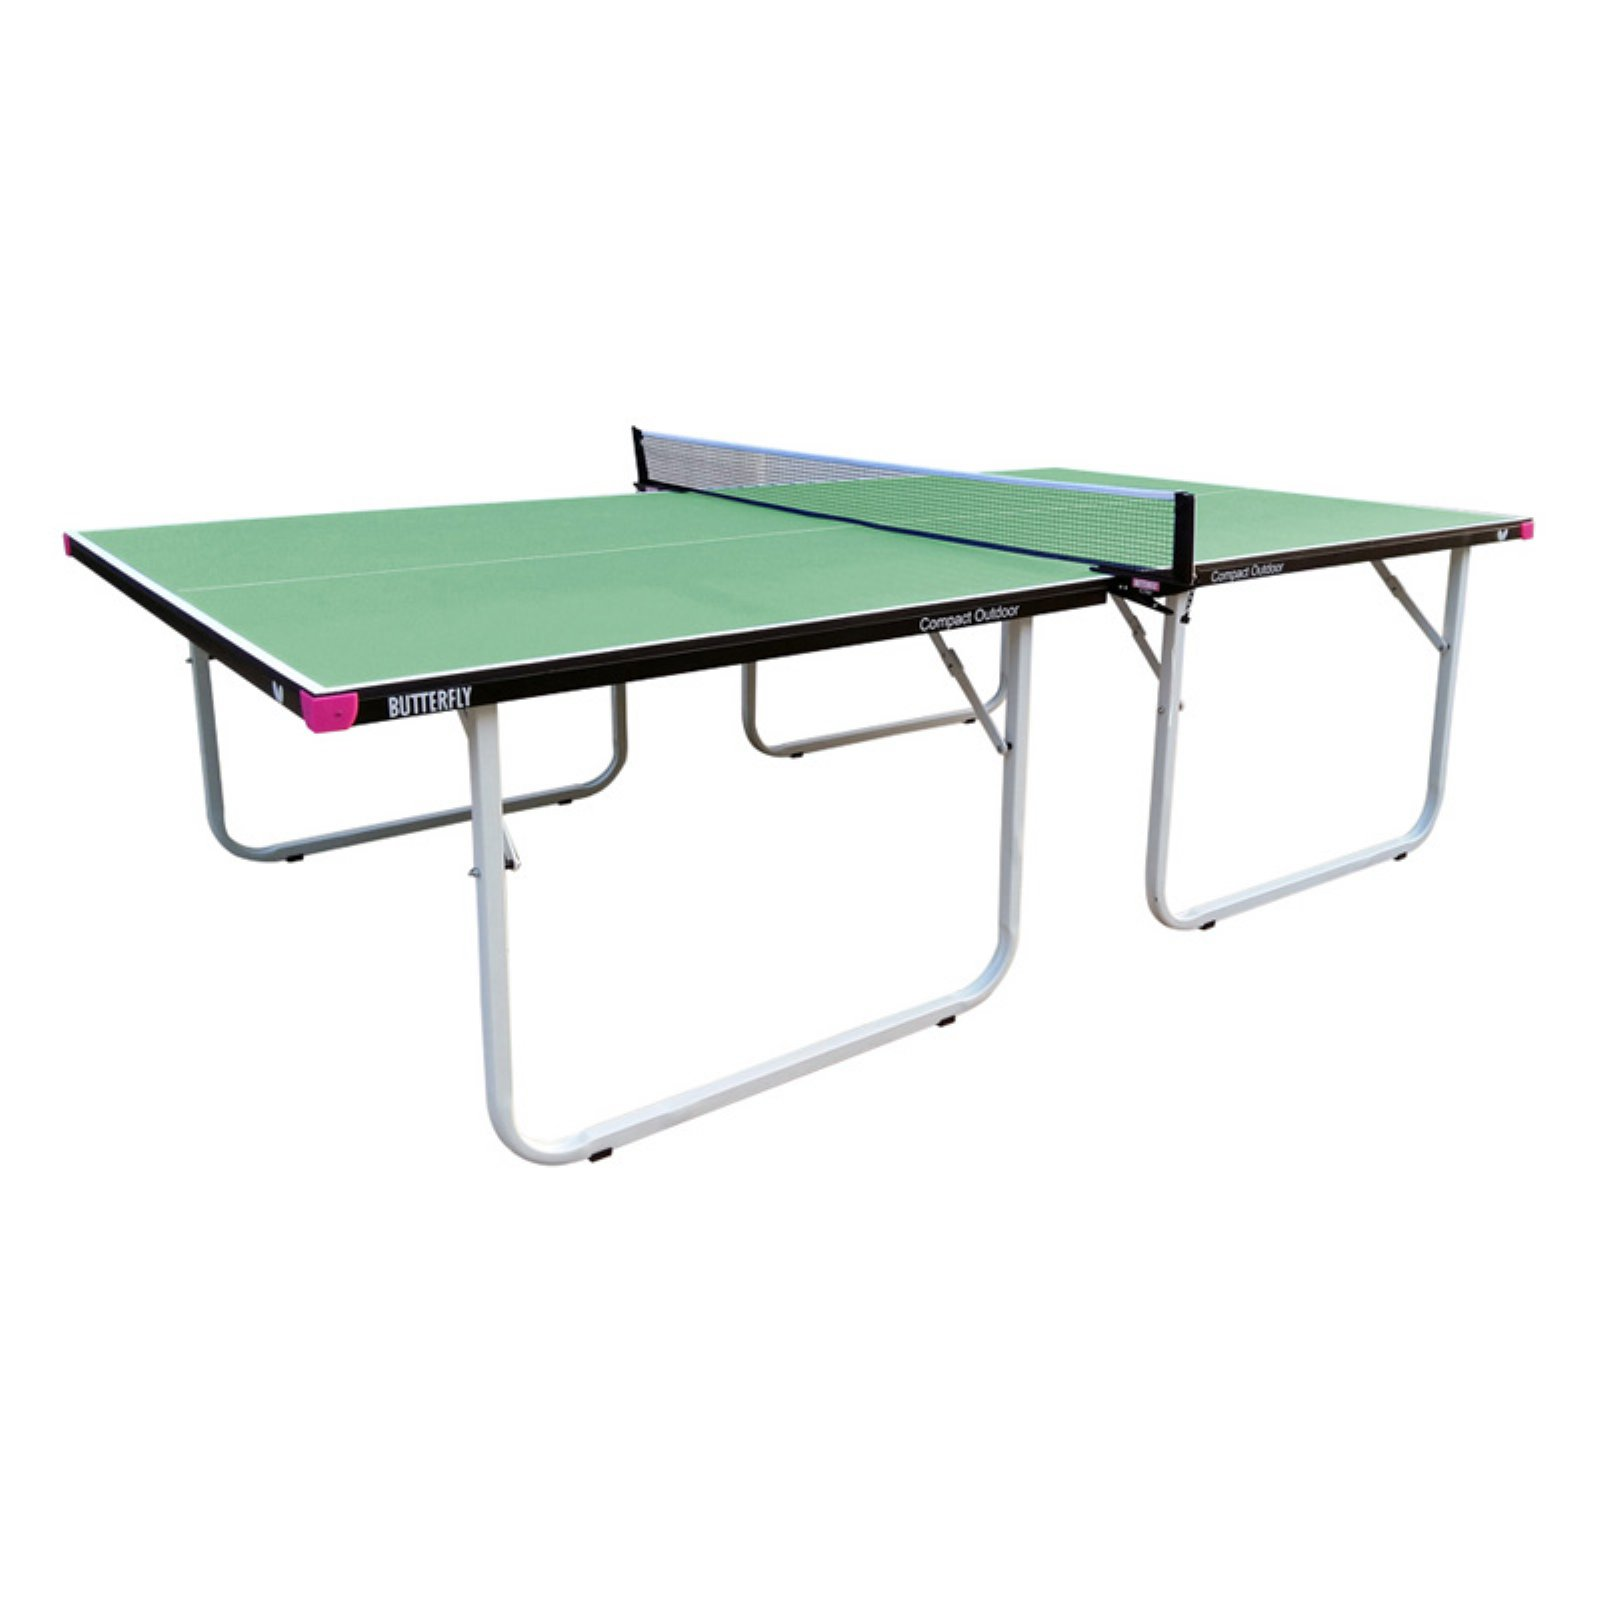 Butterfly Compact Outdoor Table Tennis Table,Green